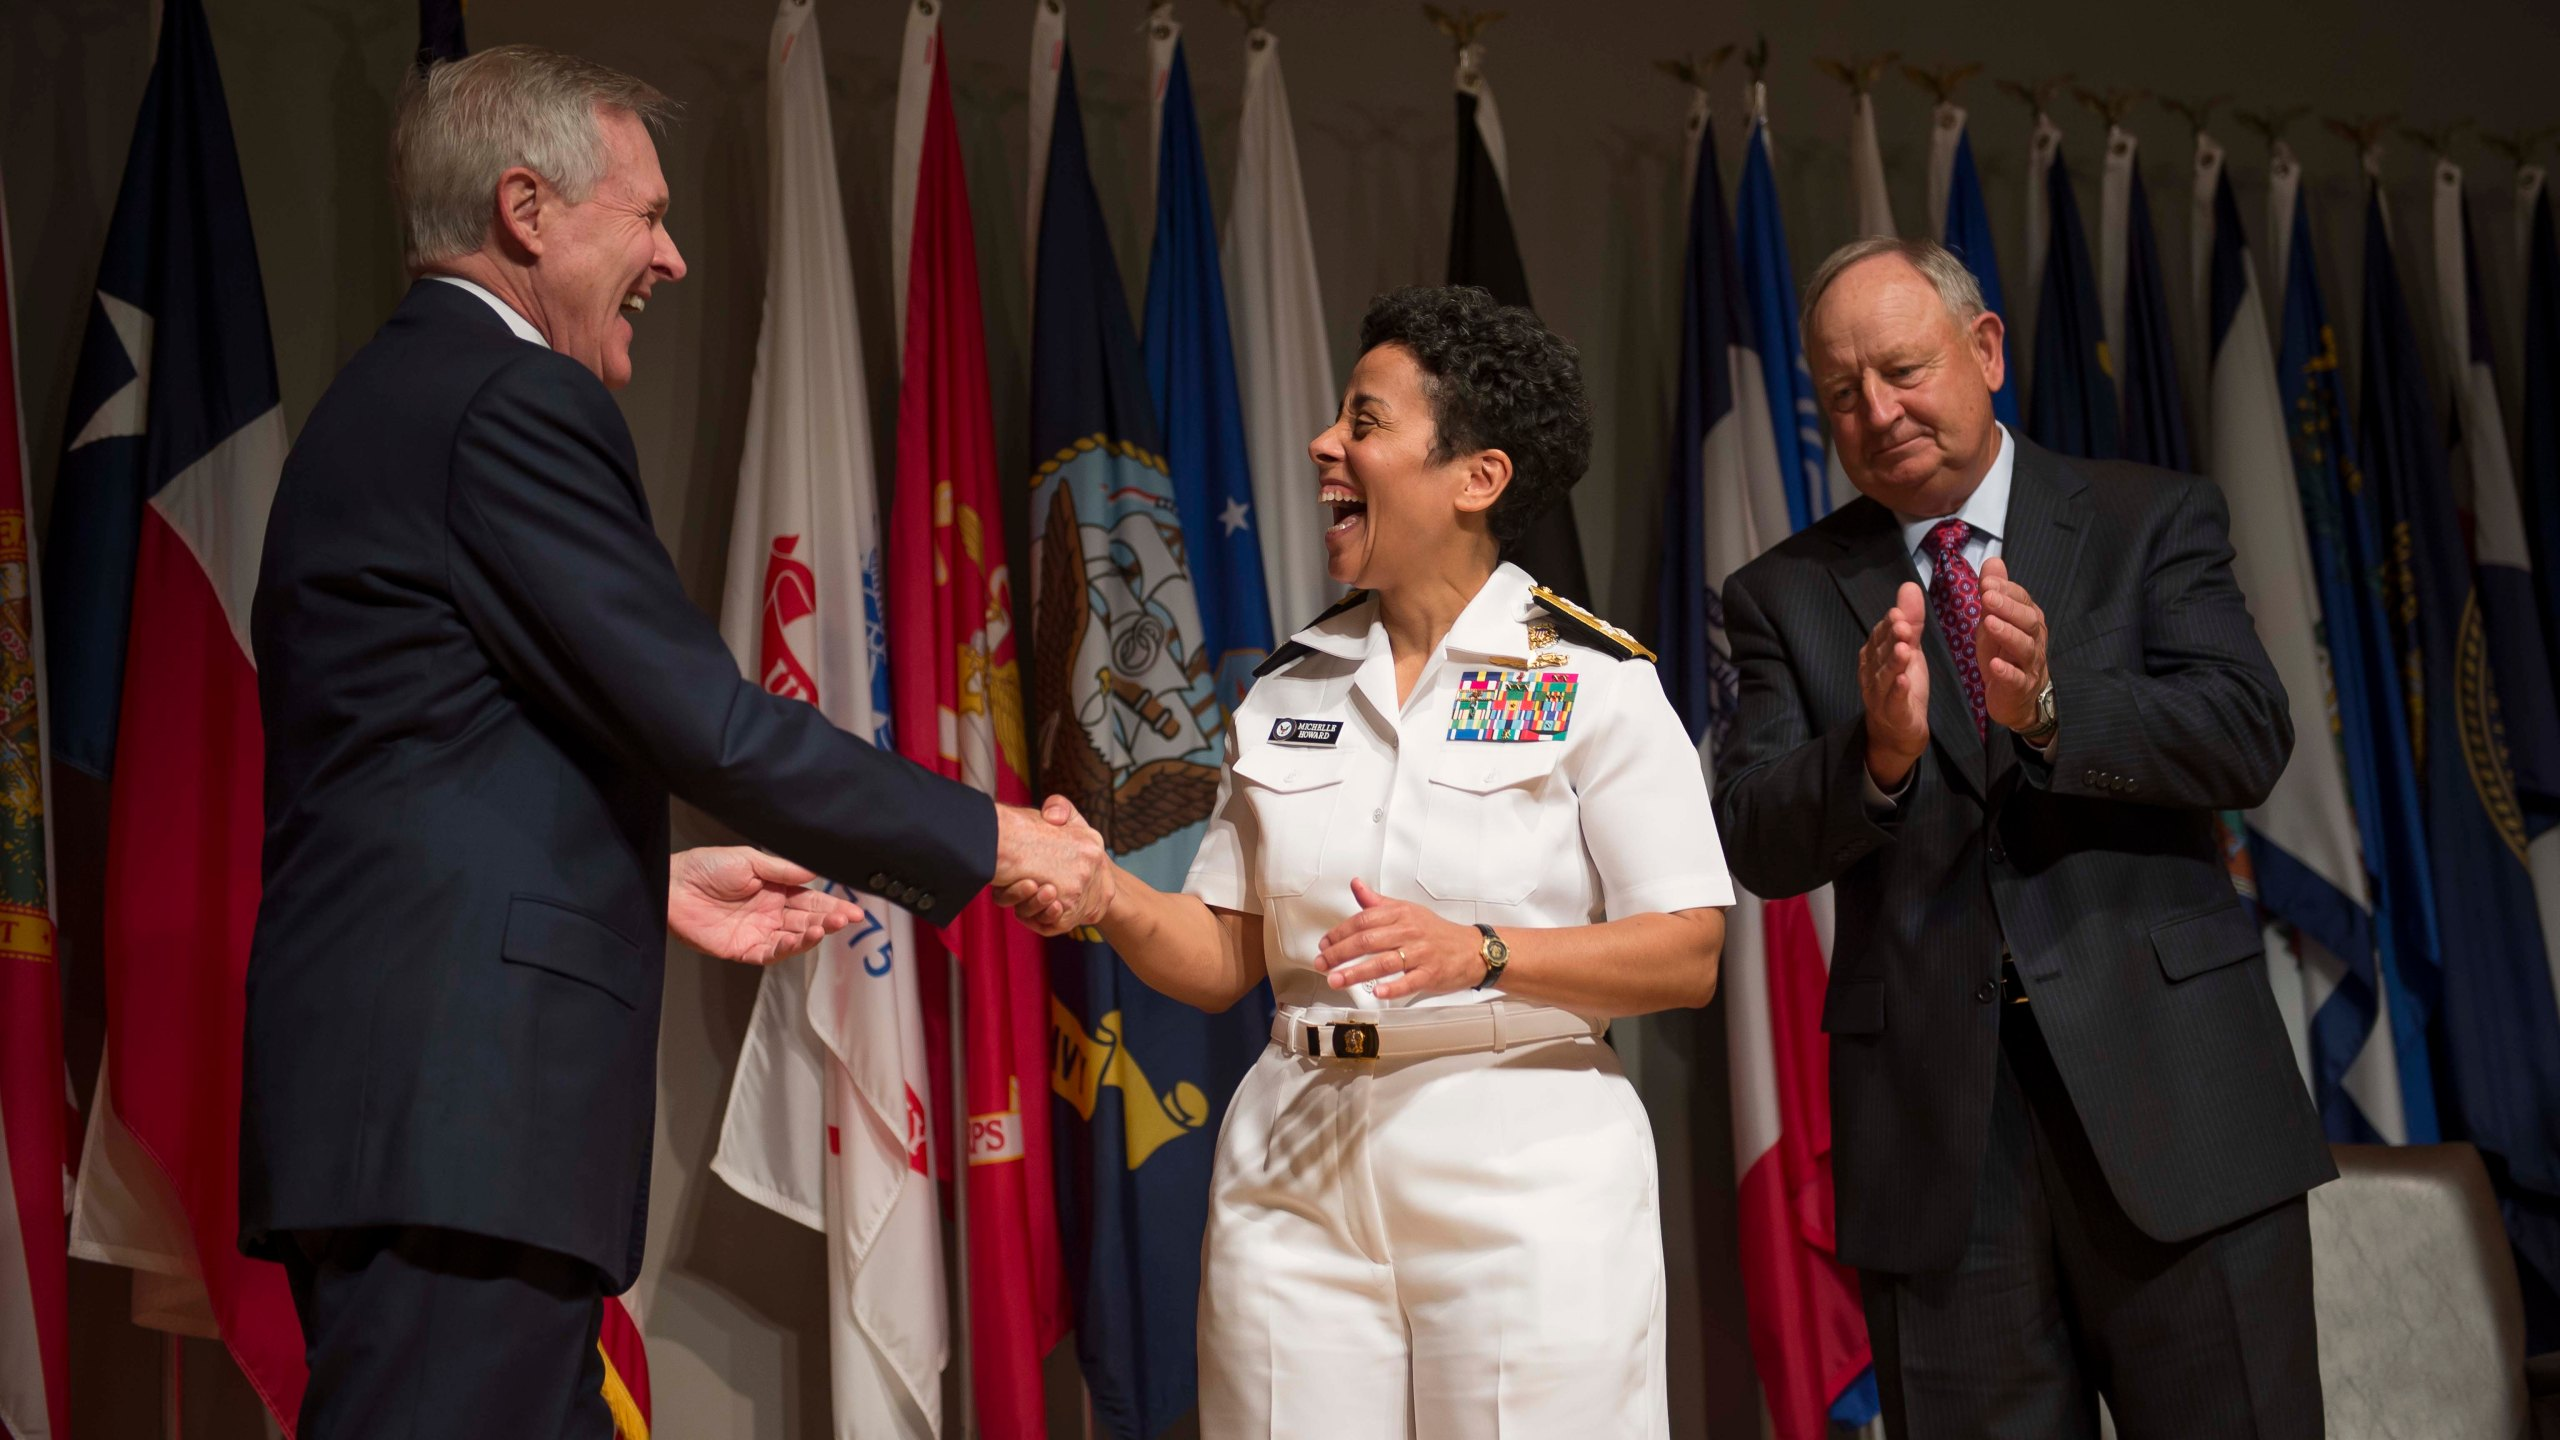 Secretary of the Navy Ray Mabus congratulates Adm. Michelle Howard after putting on her fourth star during her promotion ceremony at the Women in Military Service for America Memorial. Photo: Peter D. Lawlor/U.S. Navy